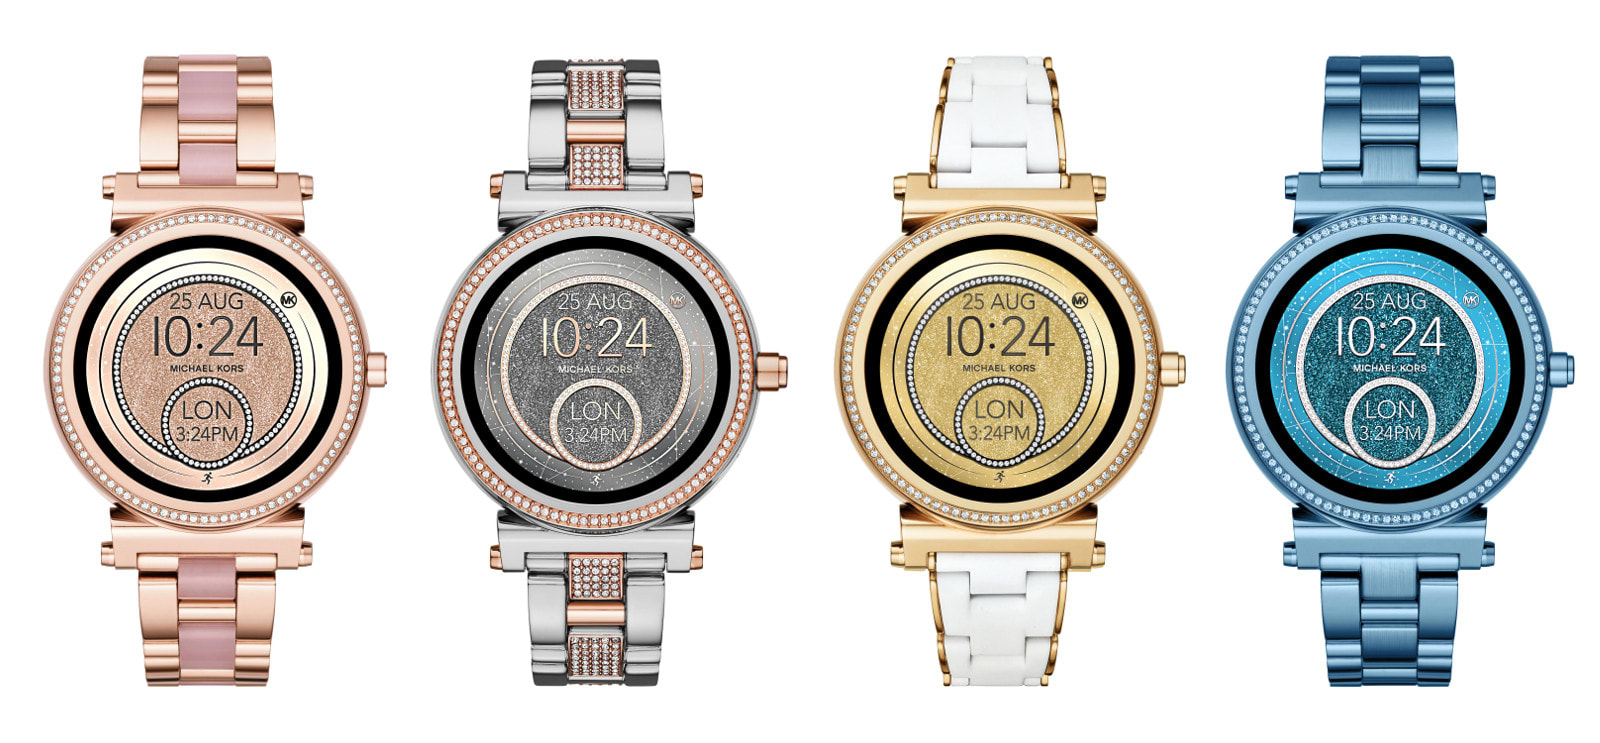 4cc1414ae3e1 Michael Kors offers Android Wear smartwatches in more colors